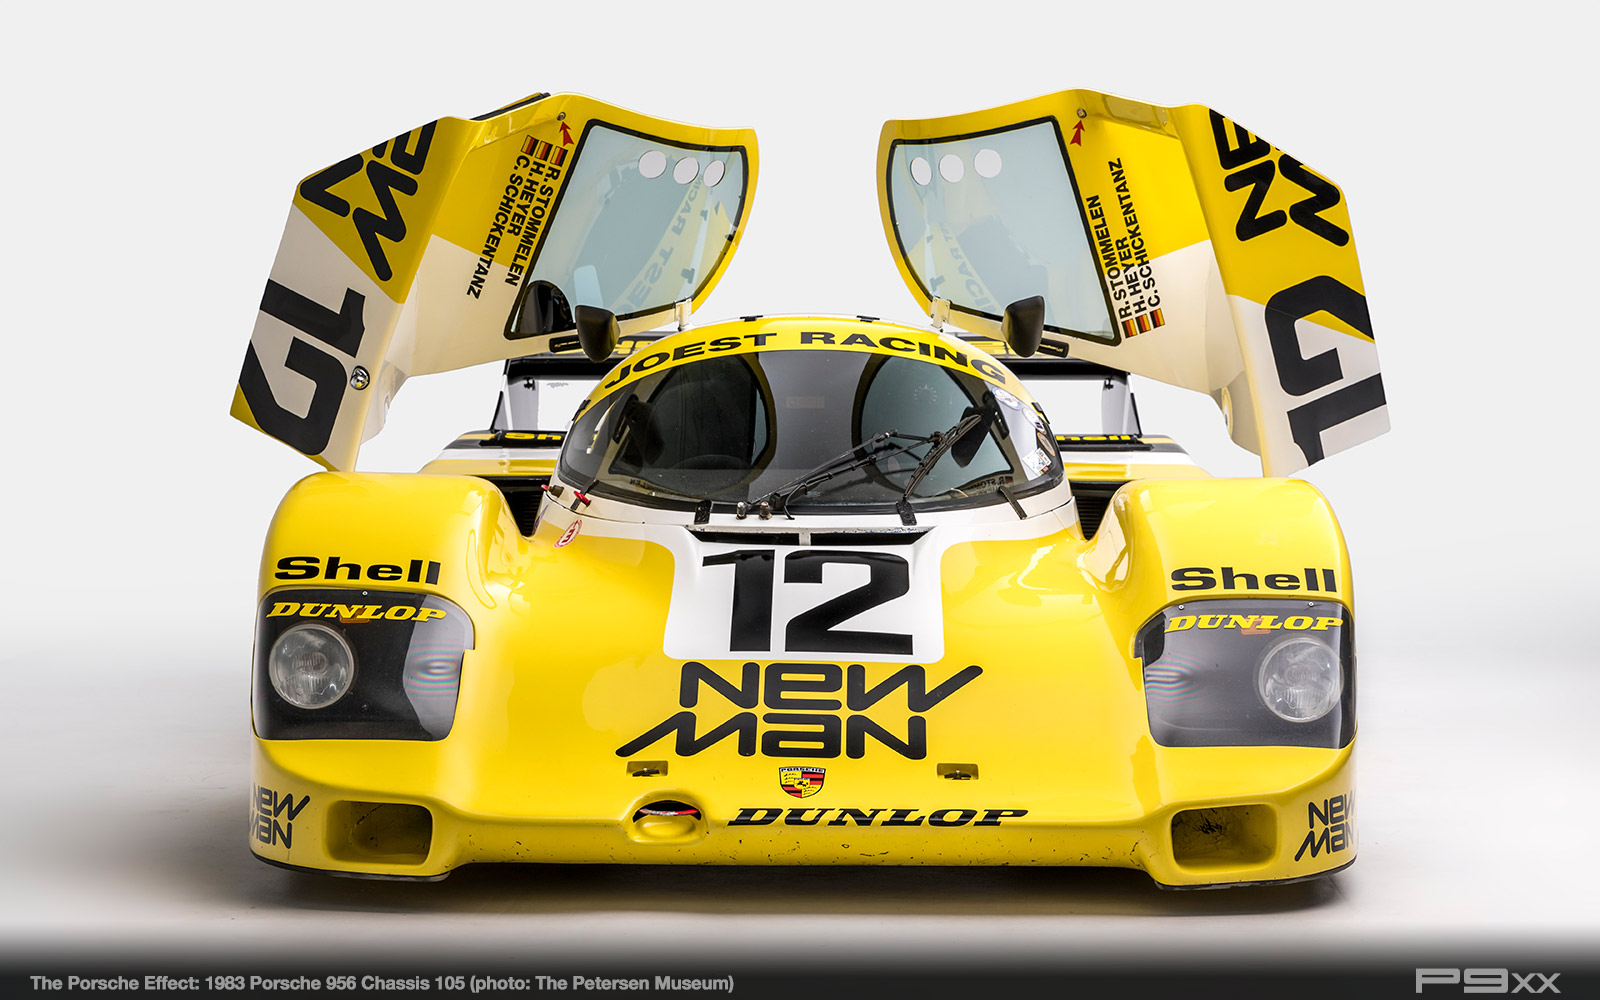 1983-956-Chassis-105-Petersen-Automotive-Museum-The-Porsche-Effect-423